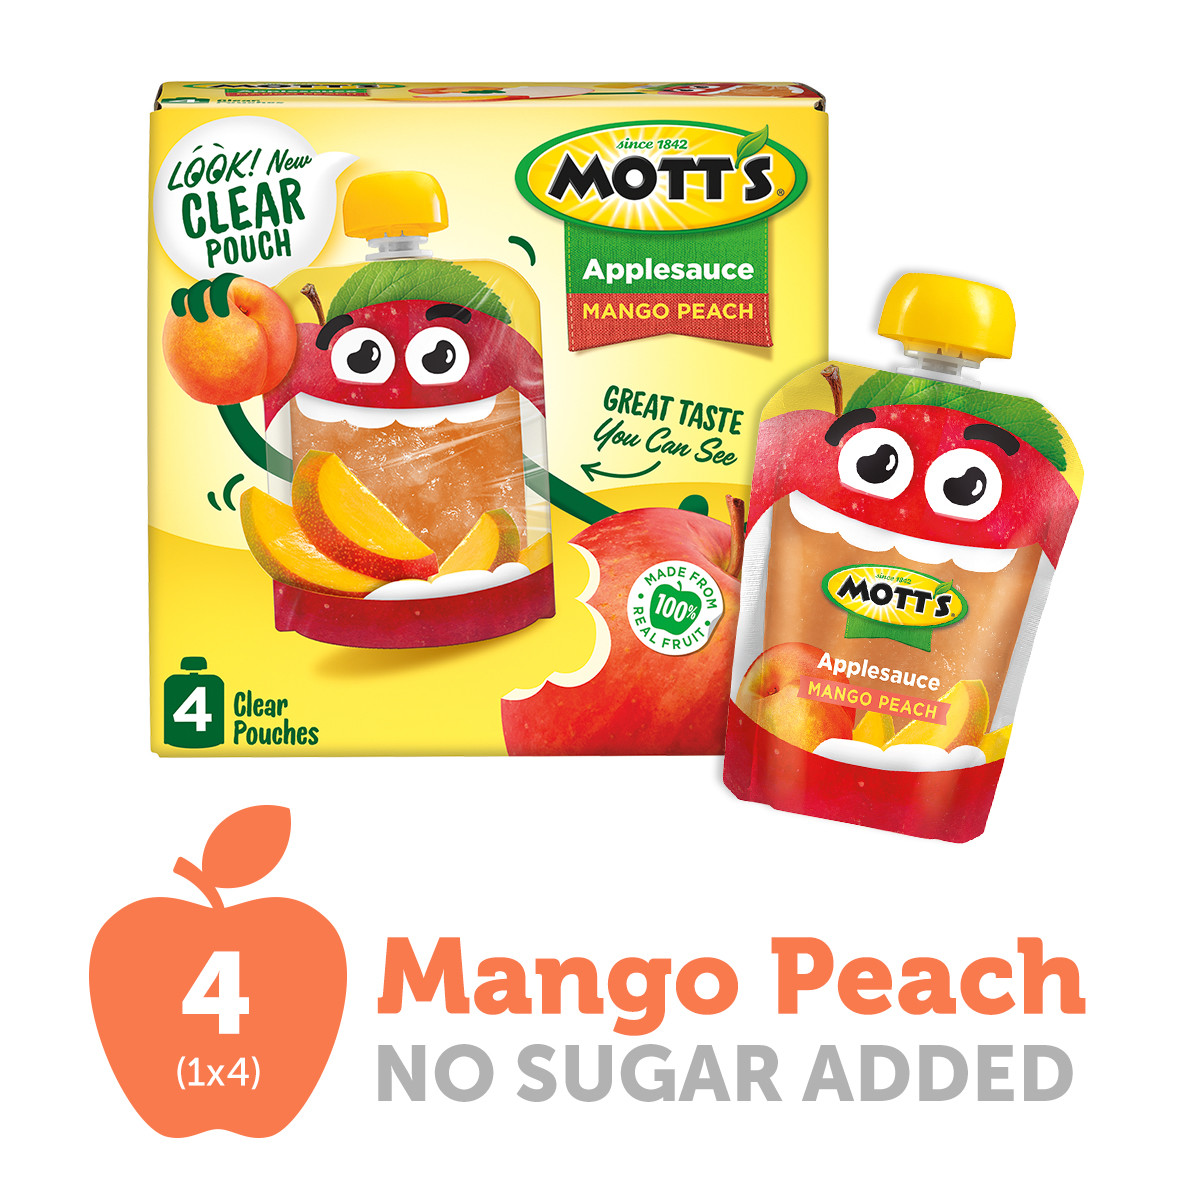 Mott's Mango Peach Applesauce, 3.2 oz clear pouches, 4 count